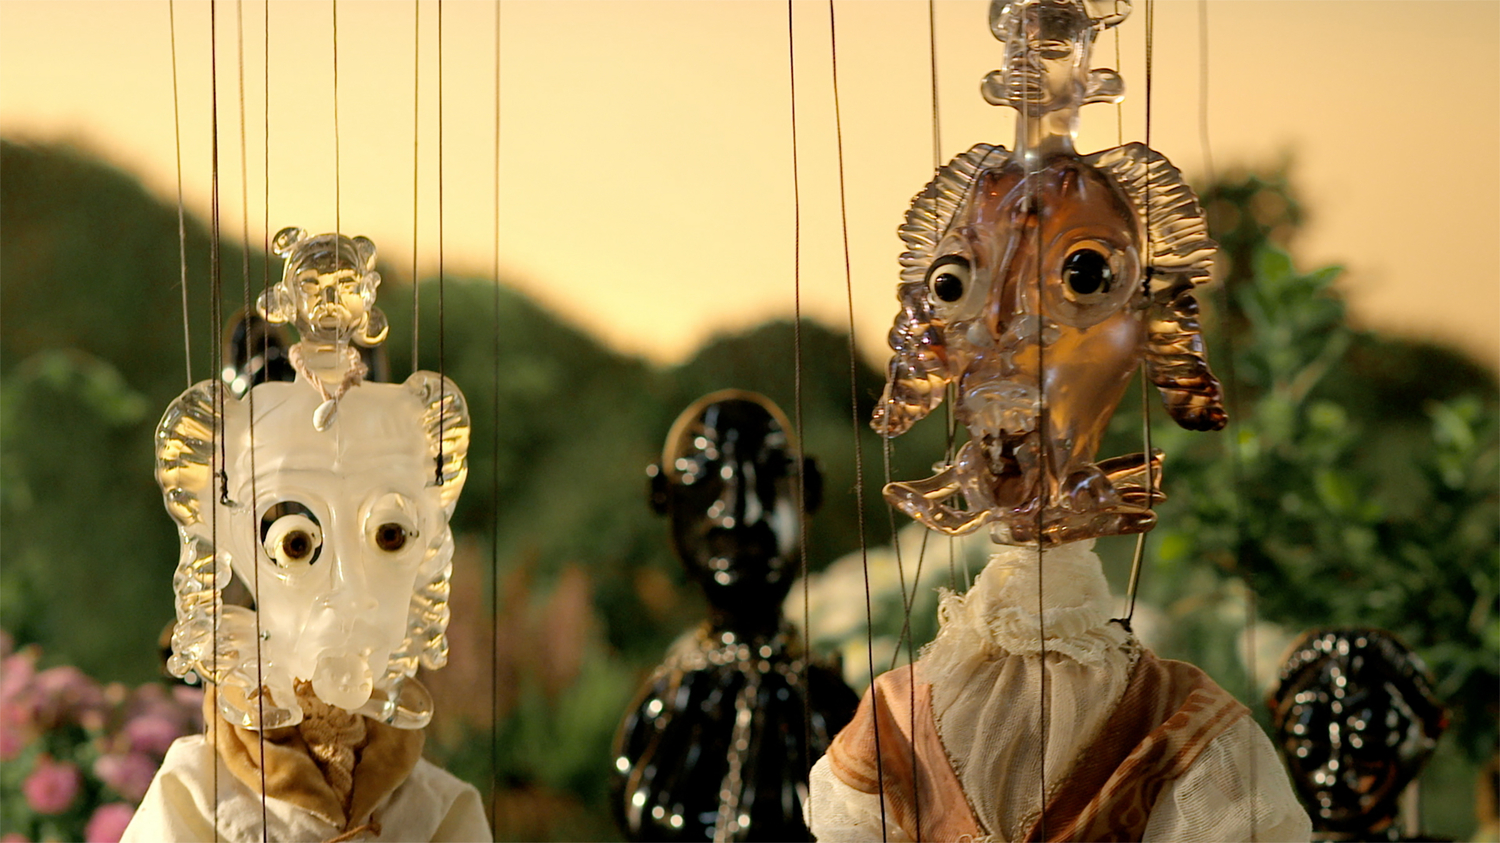 Image still from video of puppets on strings.